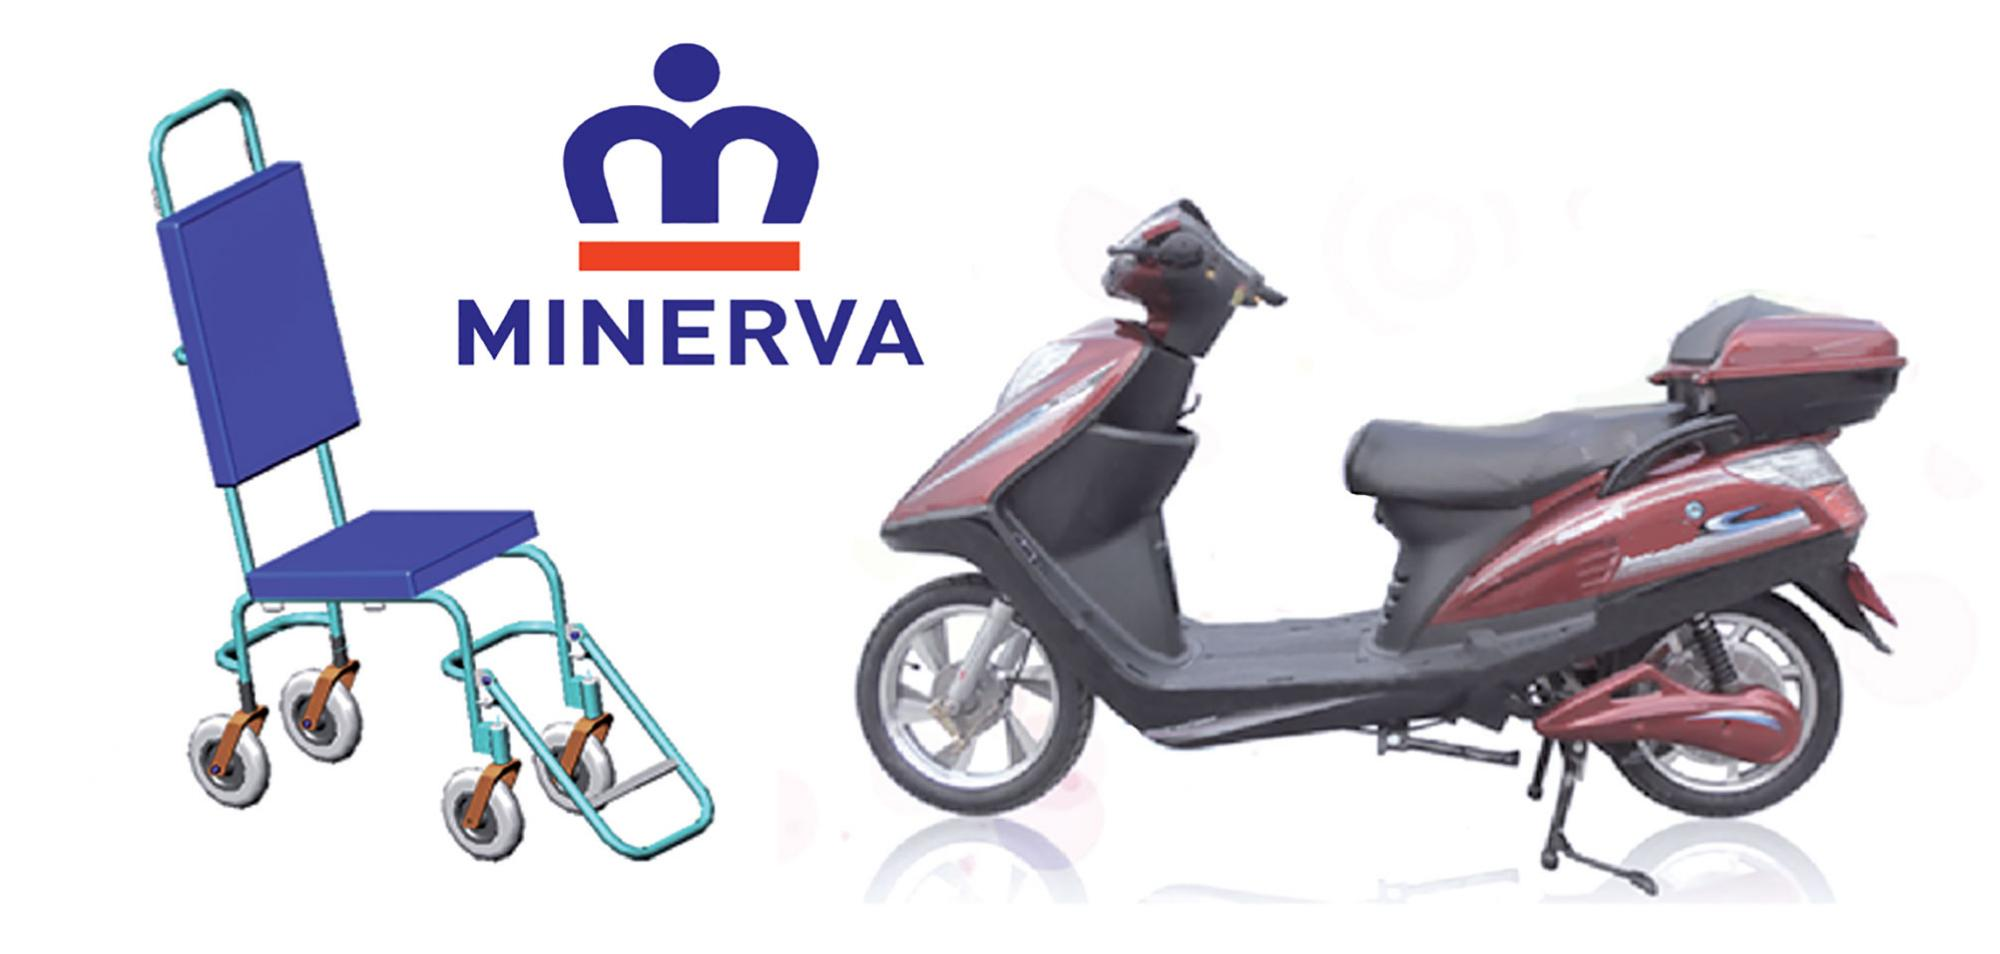 Minerva, quality and durability